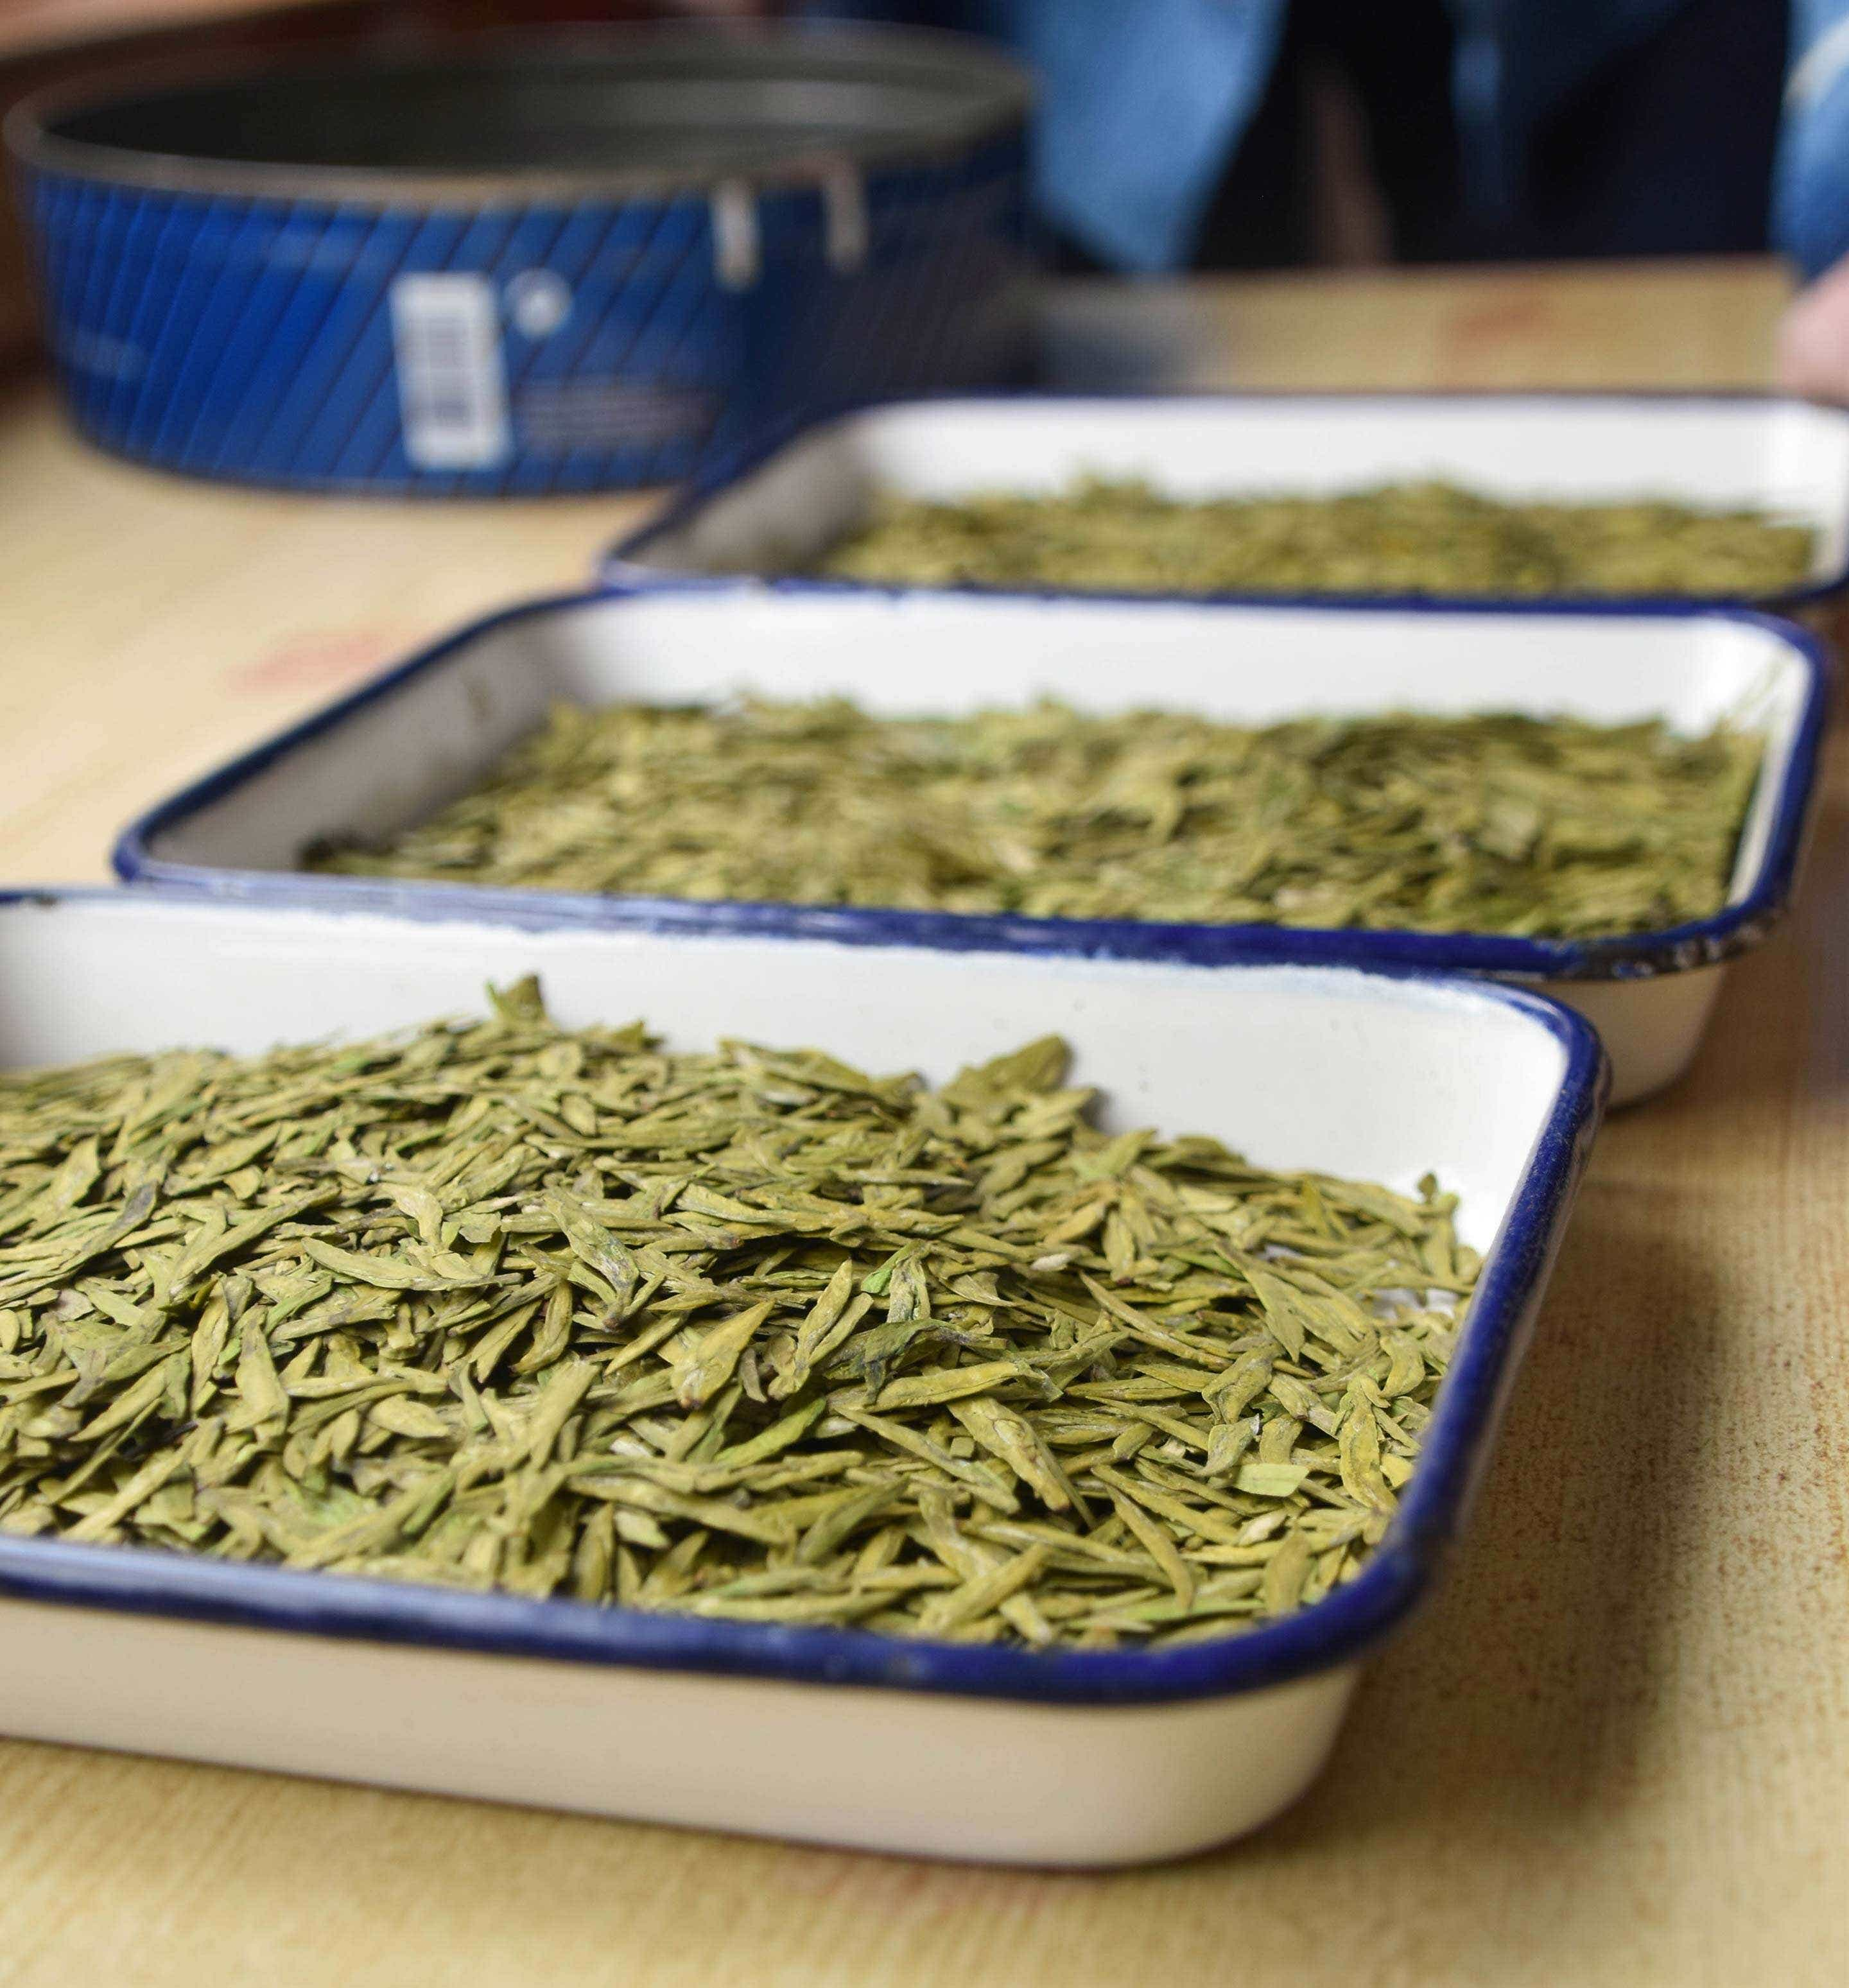 dragonwell-day-2-leaves-longjing-compare-0640-largex2